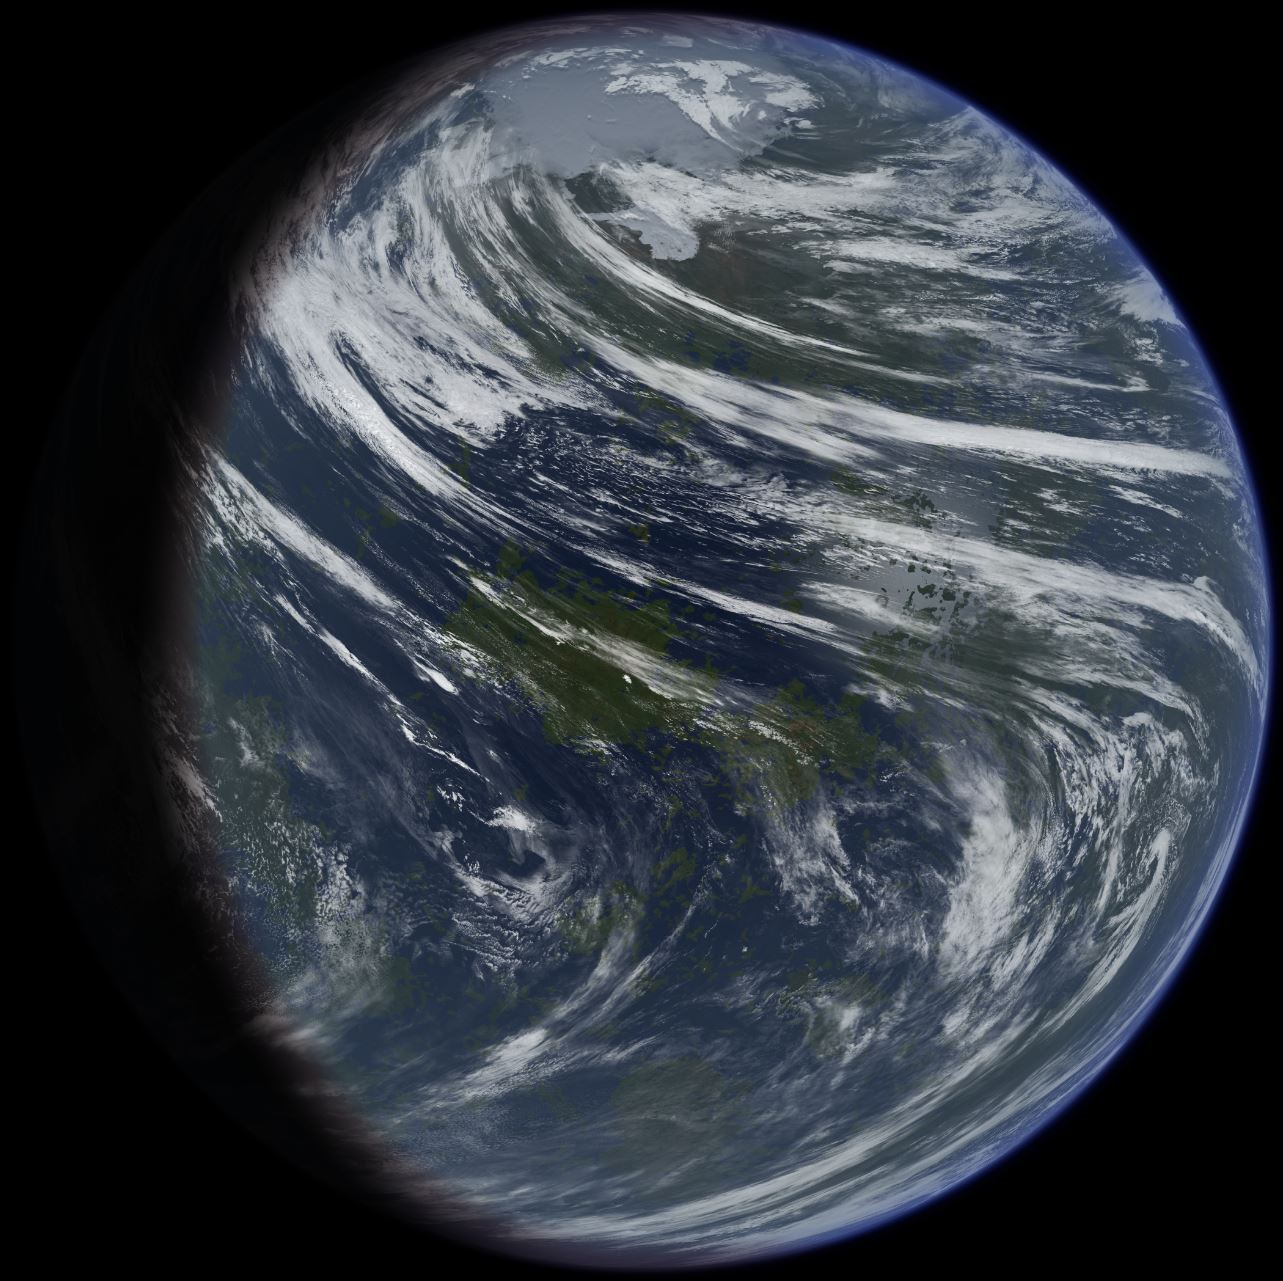 Artist's conception of a terraformed Venus, showing a surface largely covered in oceans - Image Credit:  Ittiz via Wikimedia Commons